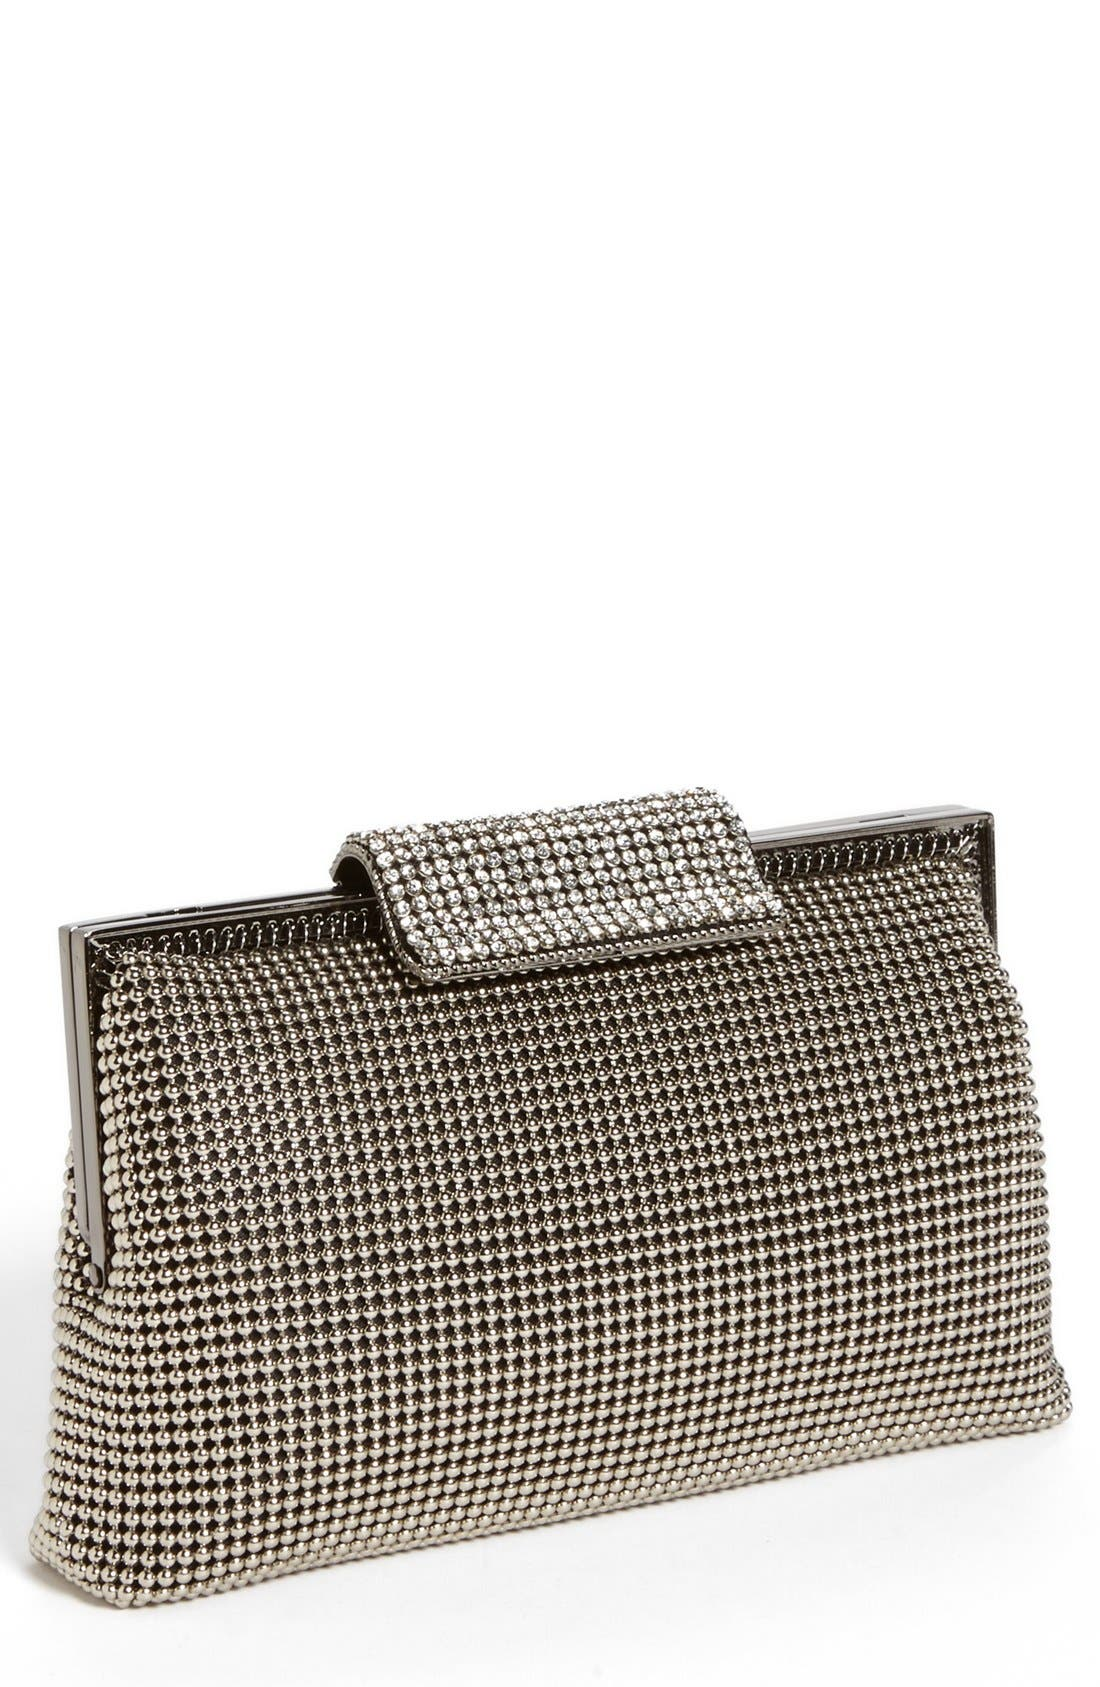 CRYSTAL FRAME CLUTCH - METALLIC